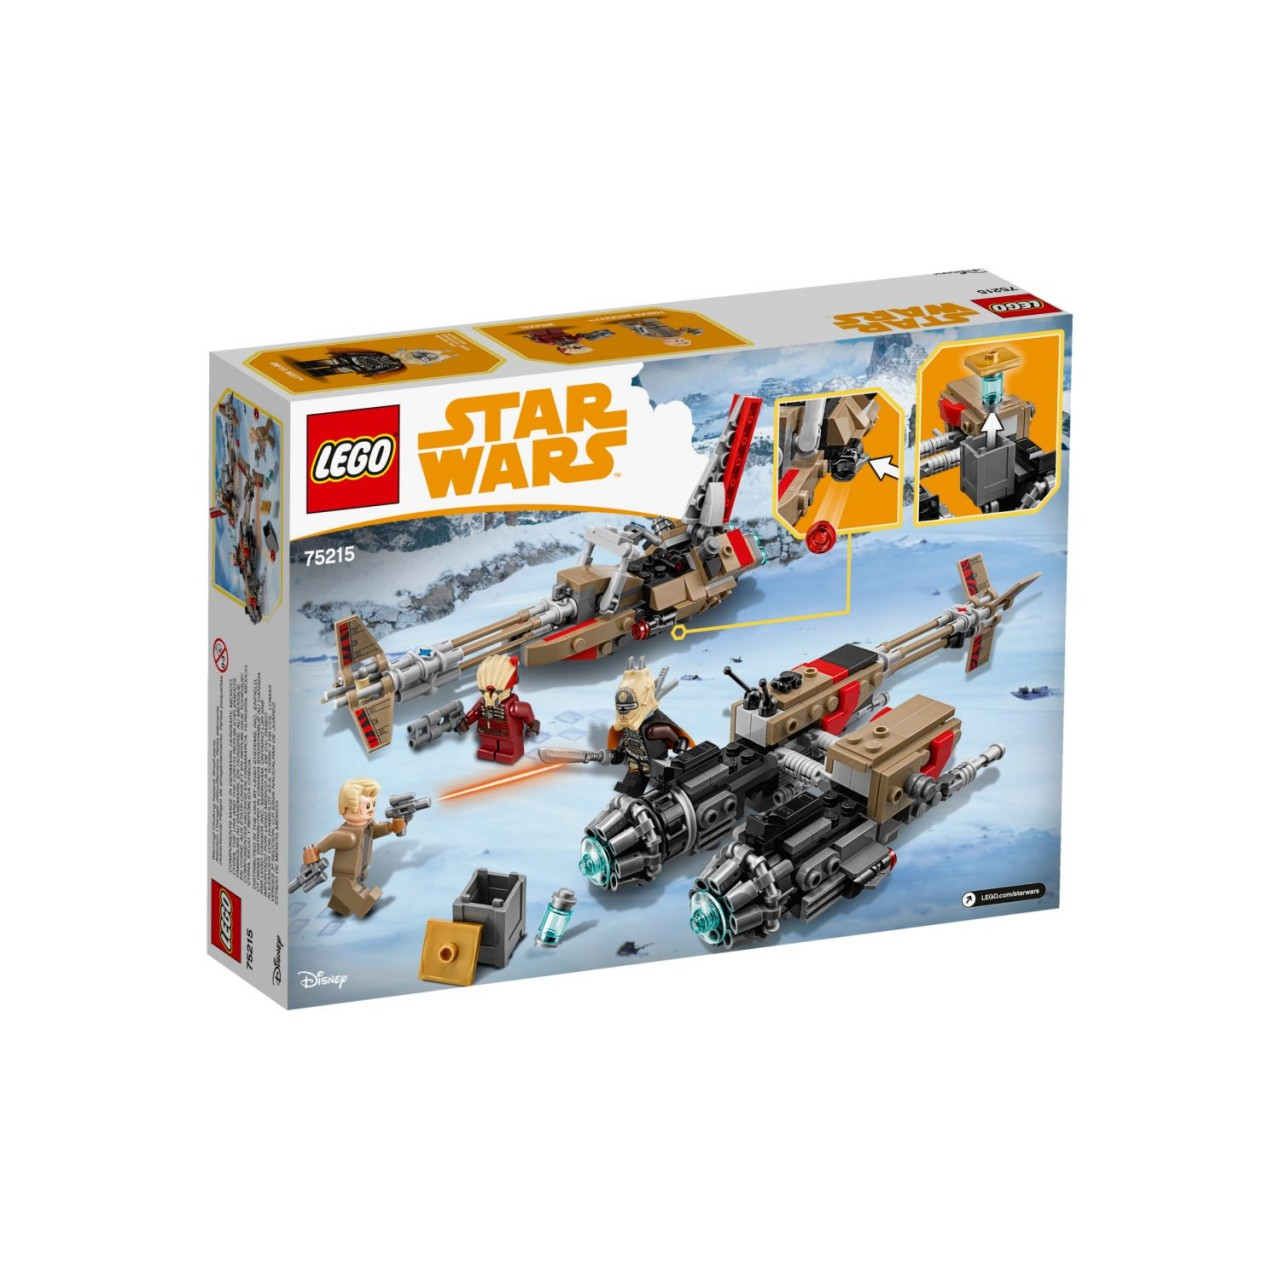 LEGO STAR WARS 75215 Cloud-Rider Swoop-Bikes